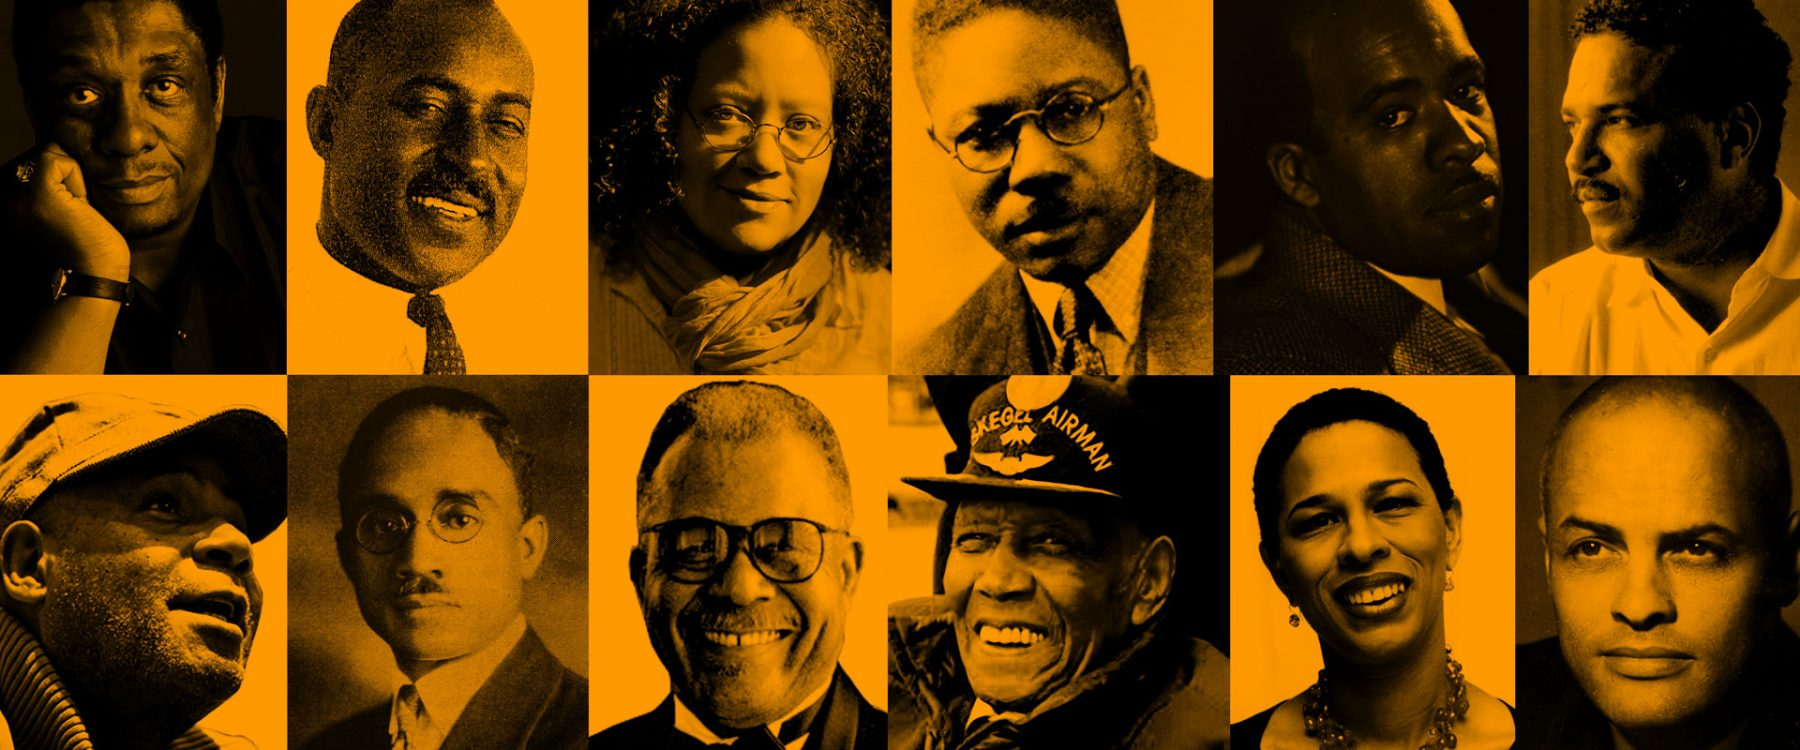 13 African American Graphic Designer You Should Know - Part 2